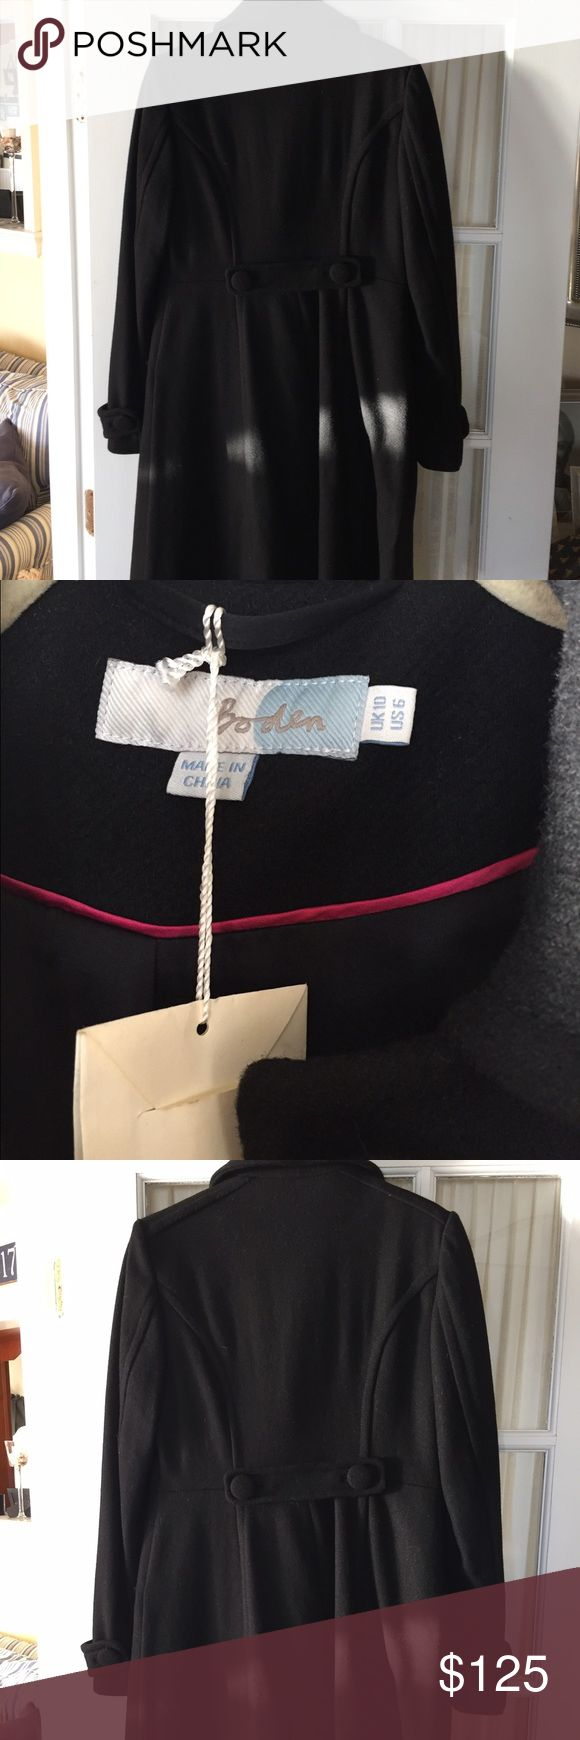 NWT Boden Ladies Long Wool Coat Sz 6/ UK Sz 10 NWT Boden Ladies Long Wool Lines Coat, Sz 6/ UK Sz 10. Color Black.  Never Worn. Perfect Winter Coat looking for a good home. Boden Jackets & Coats Trench Coats